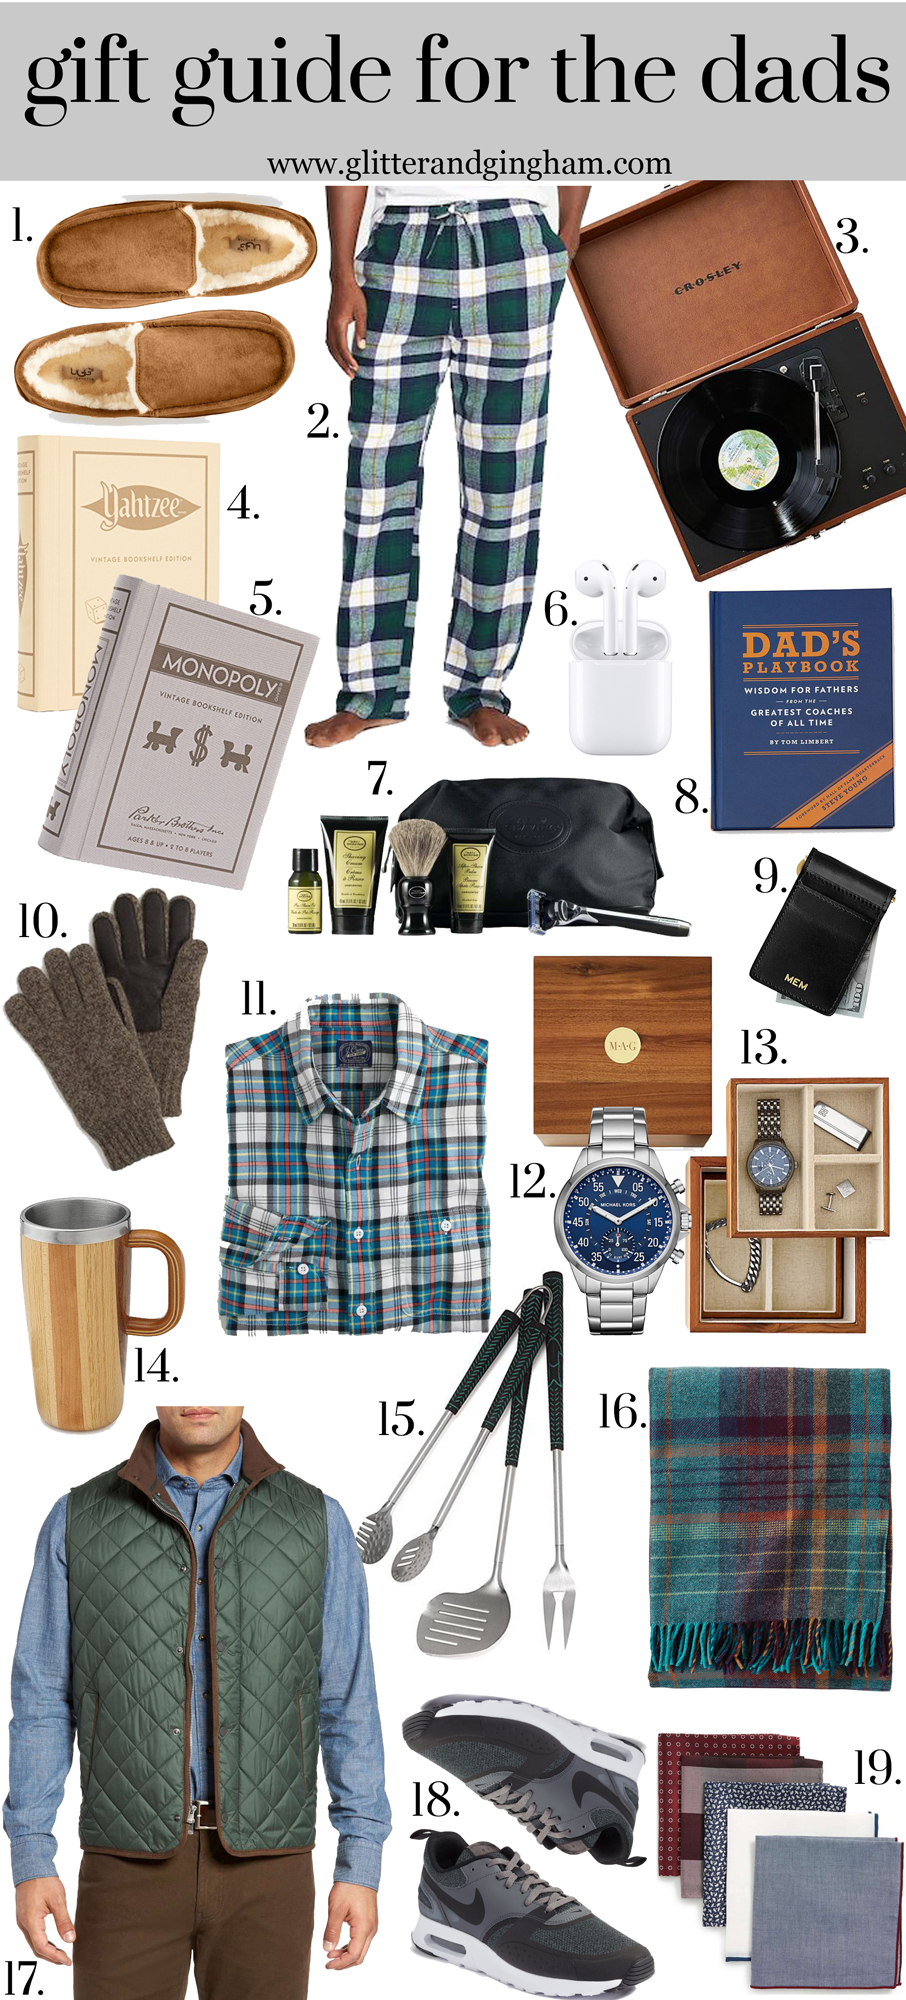 Gift Guide for you Dad / Holiday gift ideas for dads, father in laws, new dads, etc.